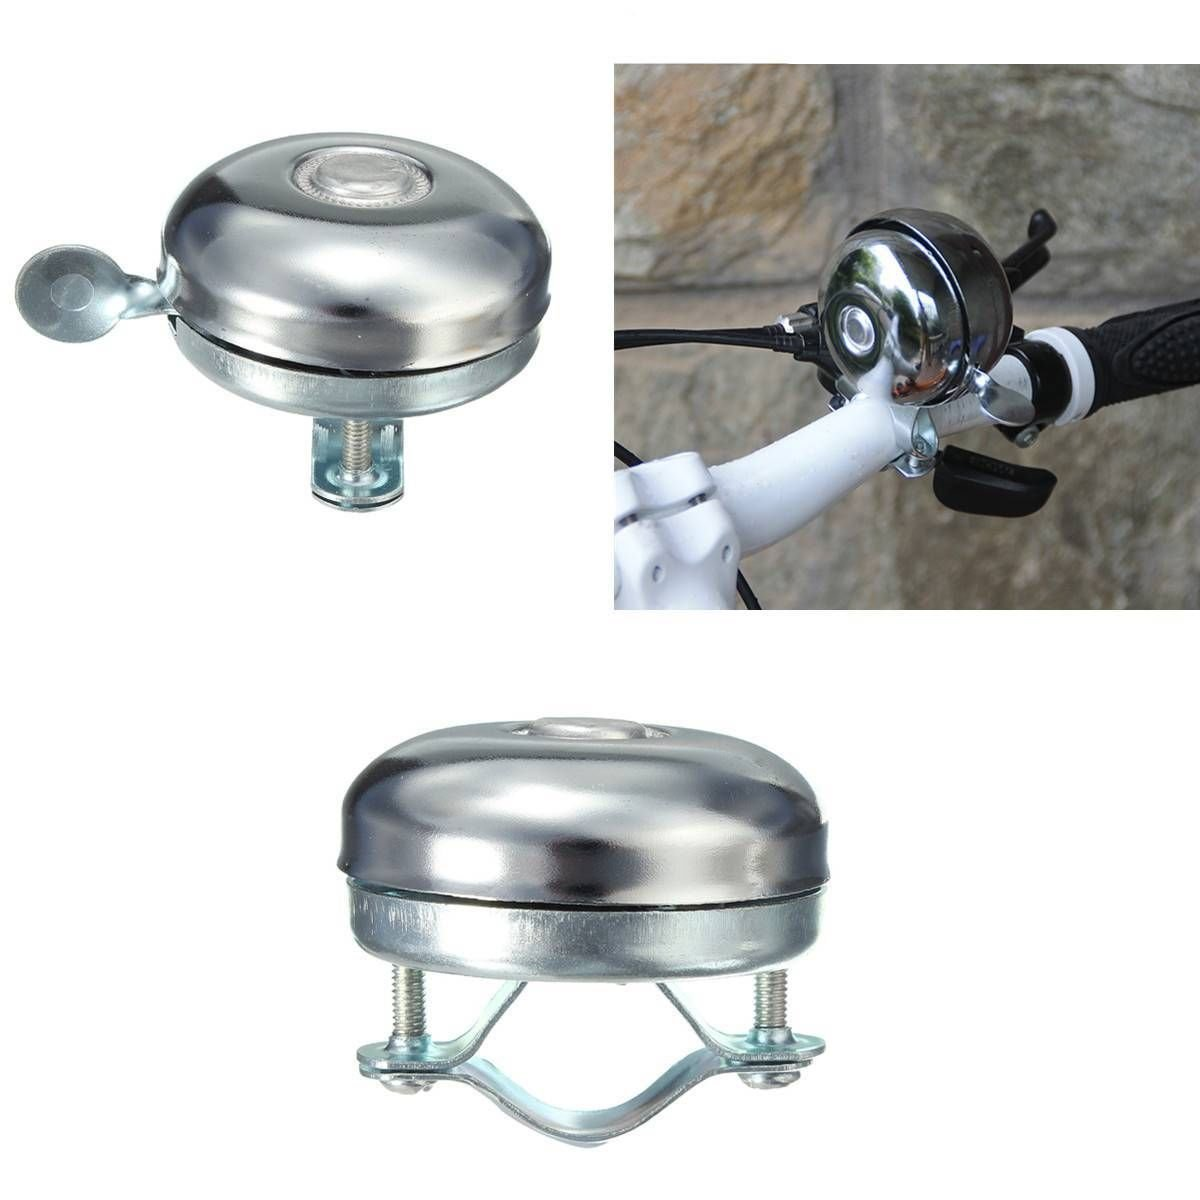 New Retro Metal Bike Ring Bicycle Cycling Handlebar Bell Sound Alarm Gold Horn▁